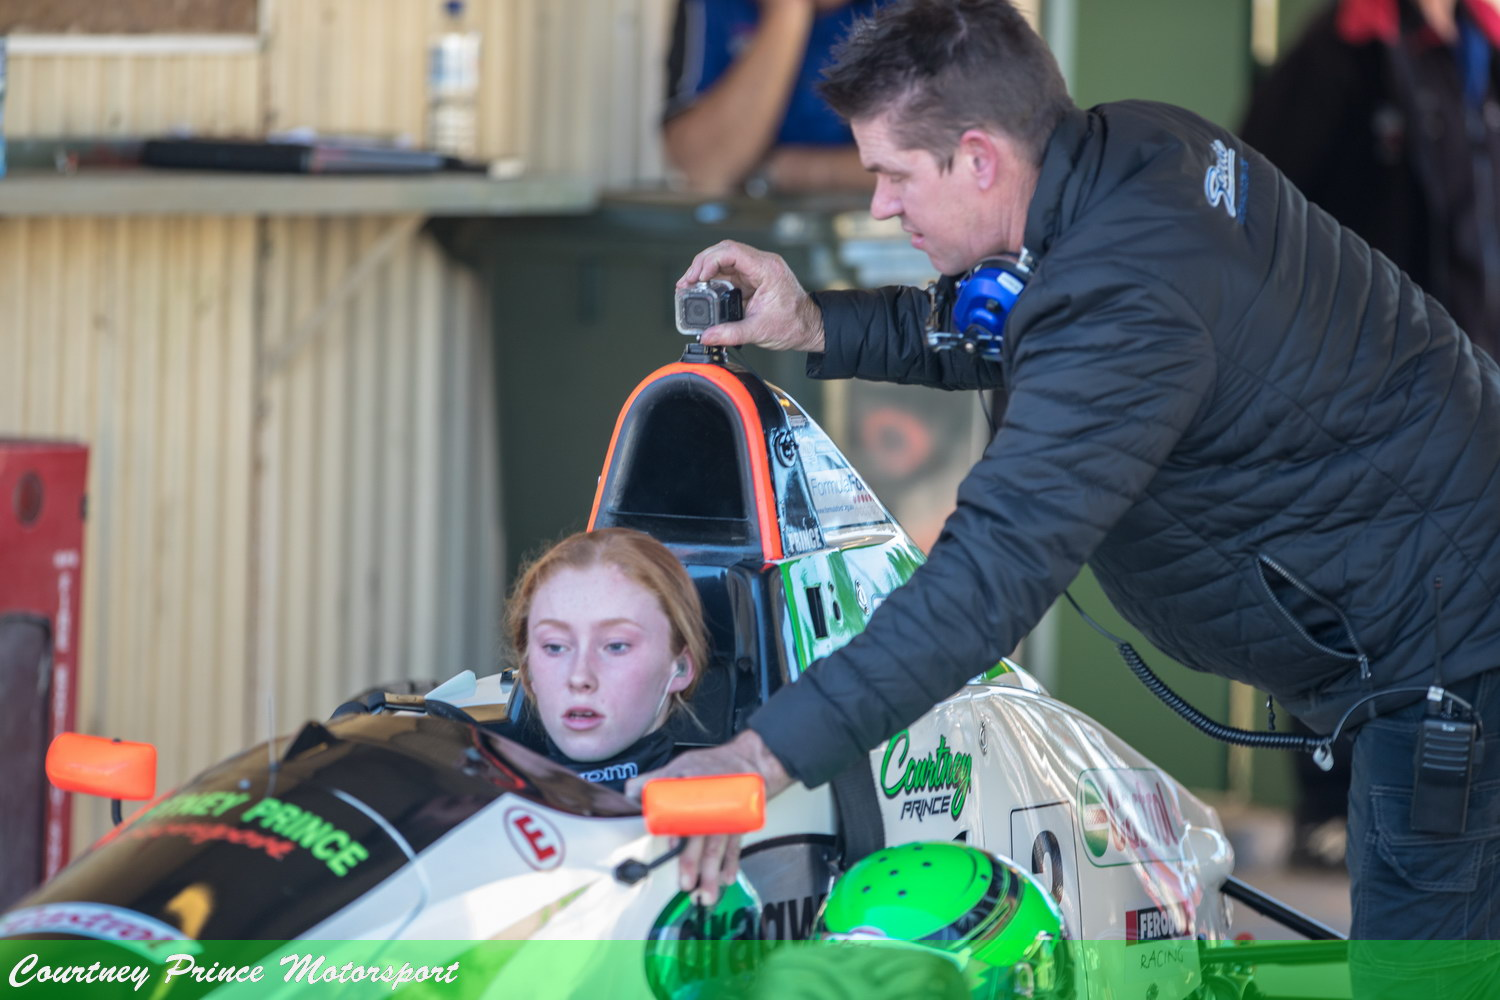 Courtney racing at Wakefield round 3 National Series – 25-27 May.